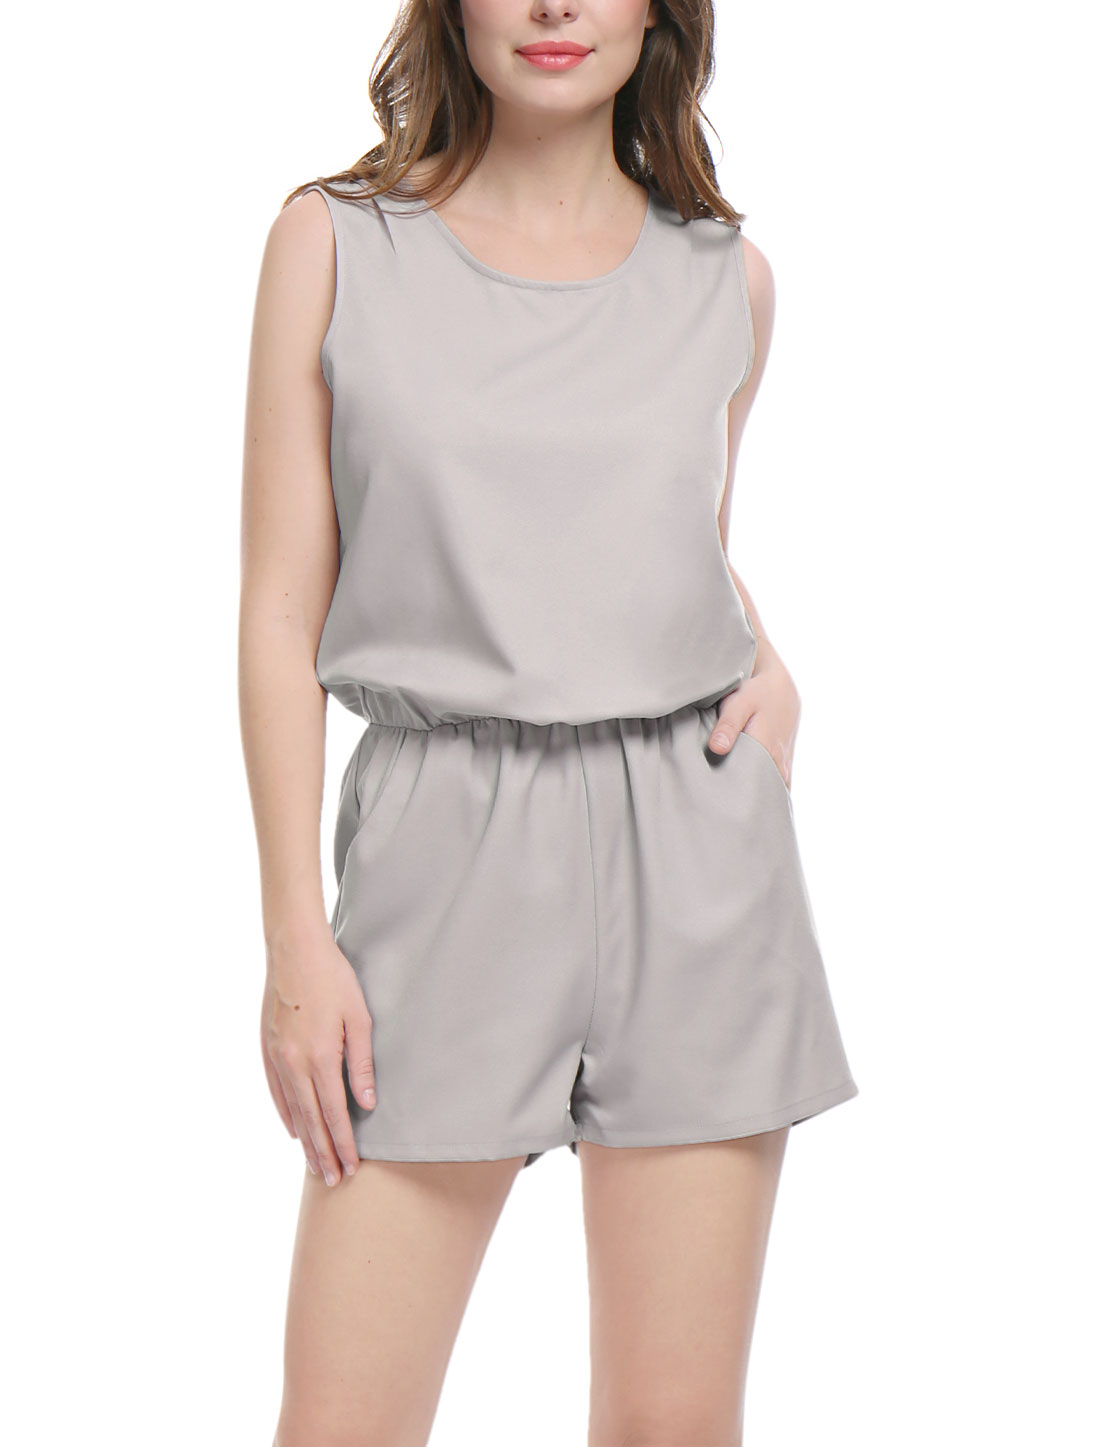 Women Sleeveless Cut Out Back Elastic Waist Romper Gray L